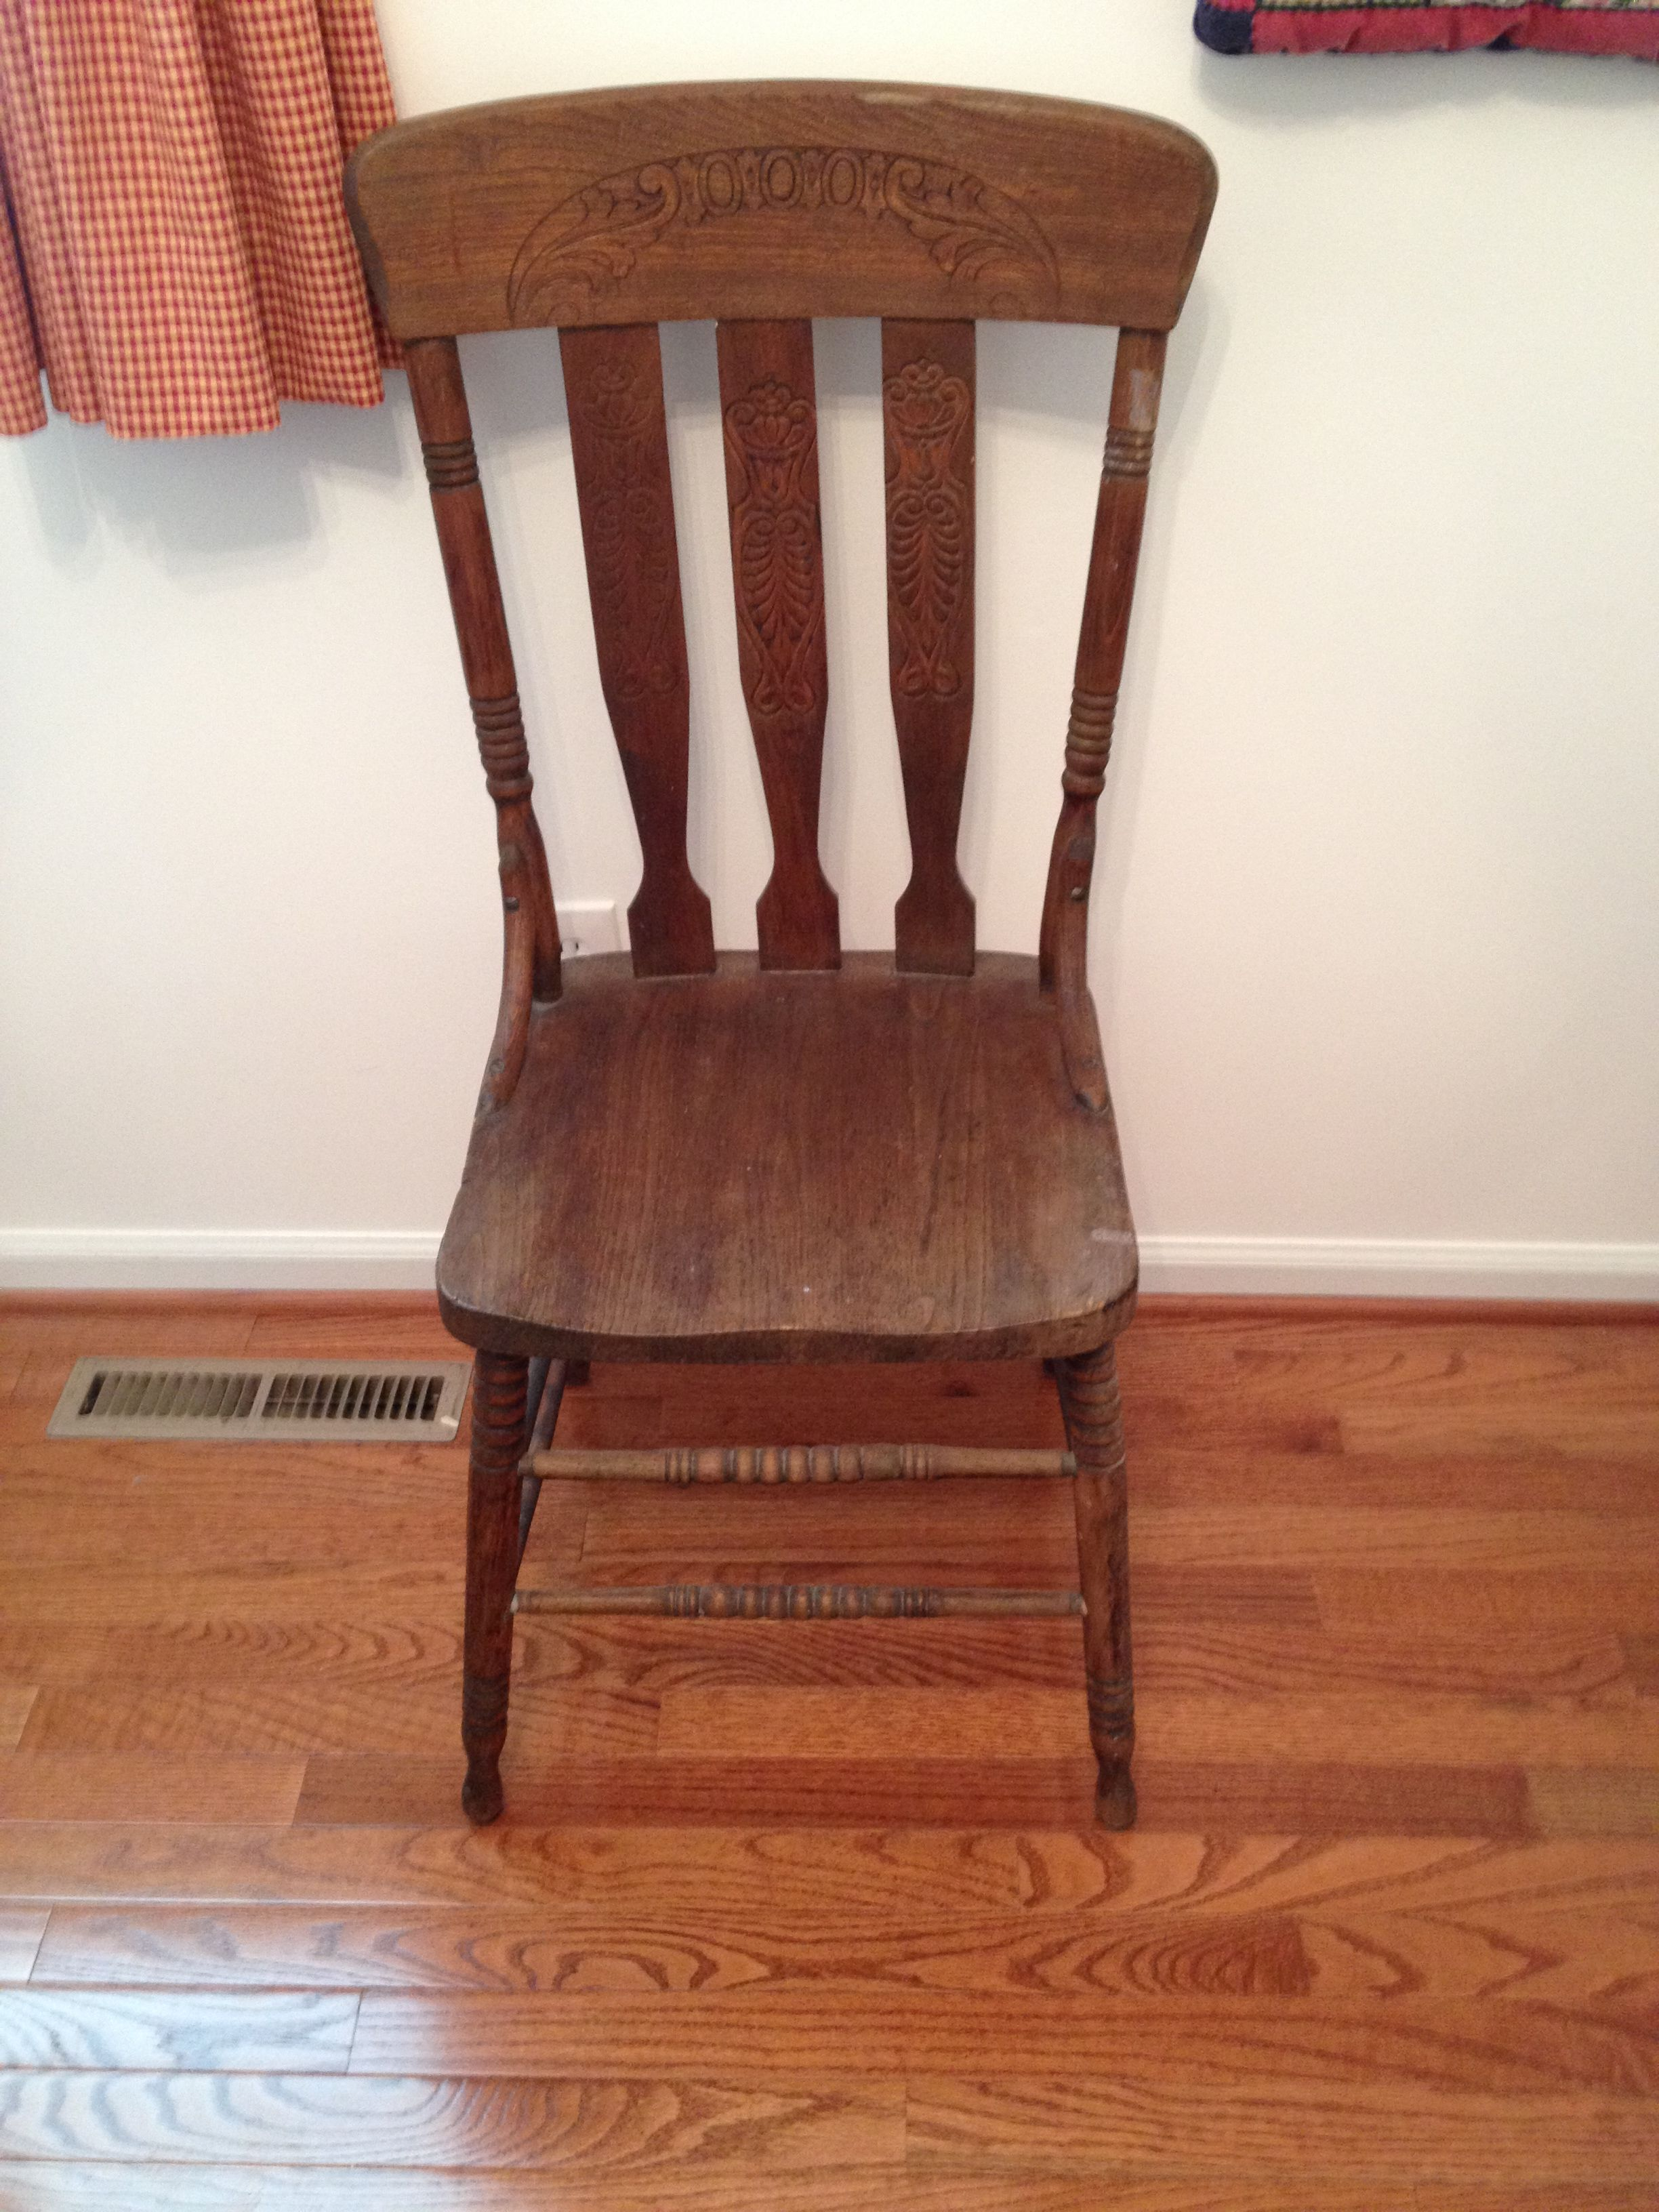 antique wooden spindle chair asking $20 PERRYHALL location